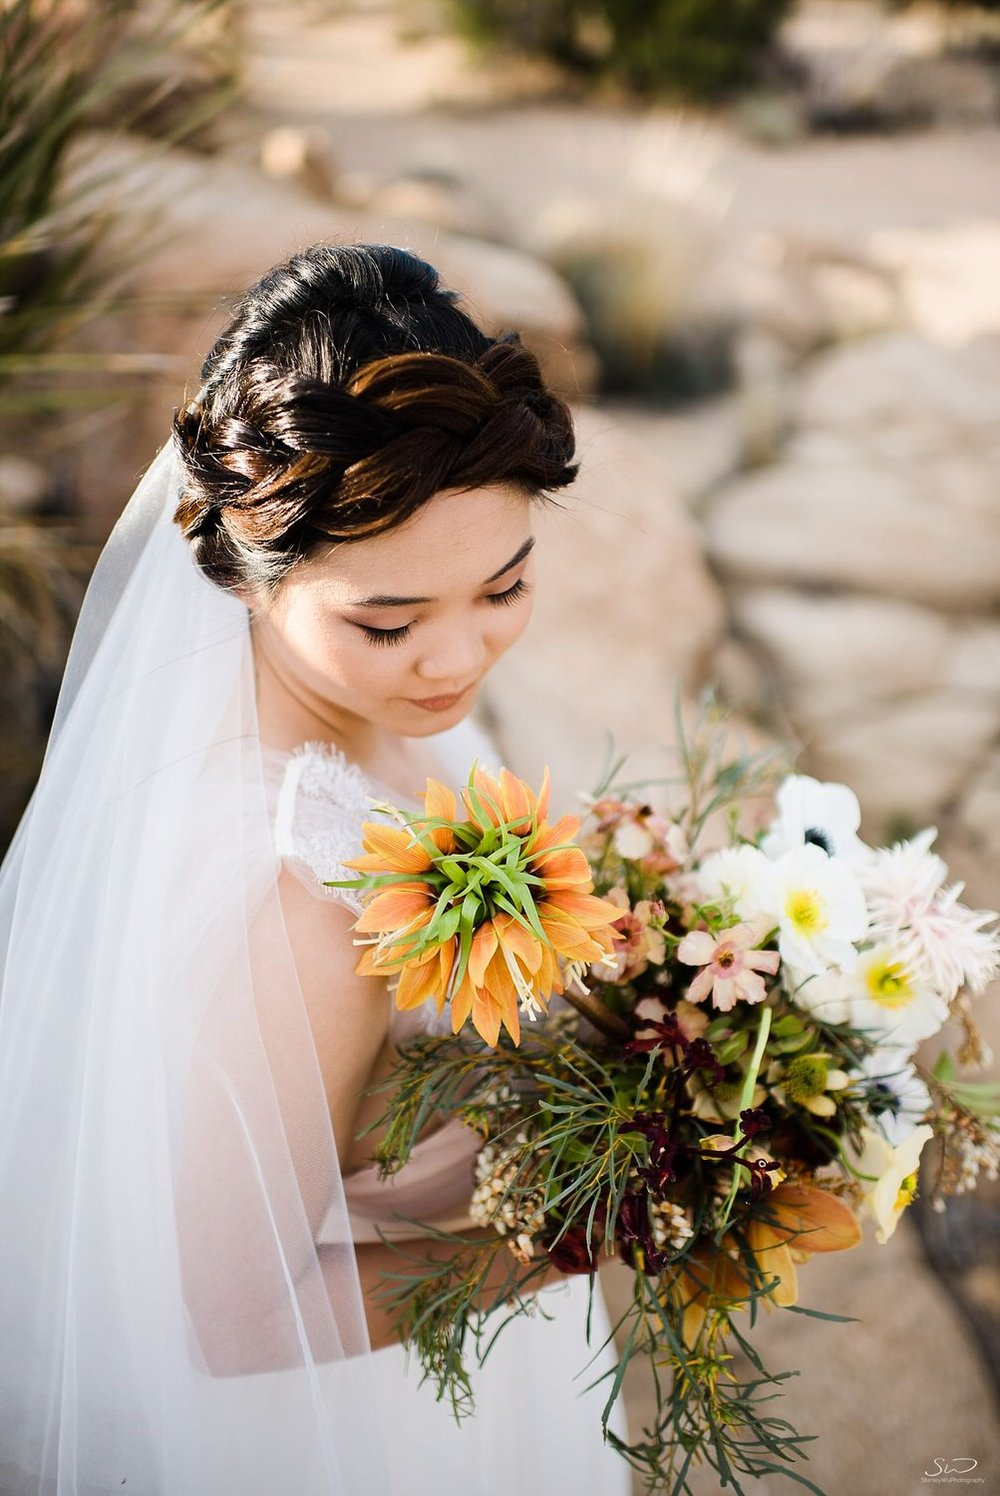 Beautiful bridal dress with wedding bouquet | Joshua Tree Desert Wedding, Engagement, Elopement Inspiration